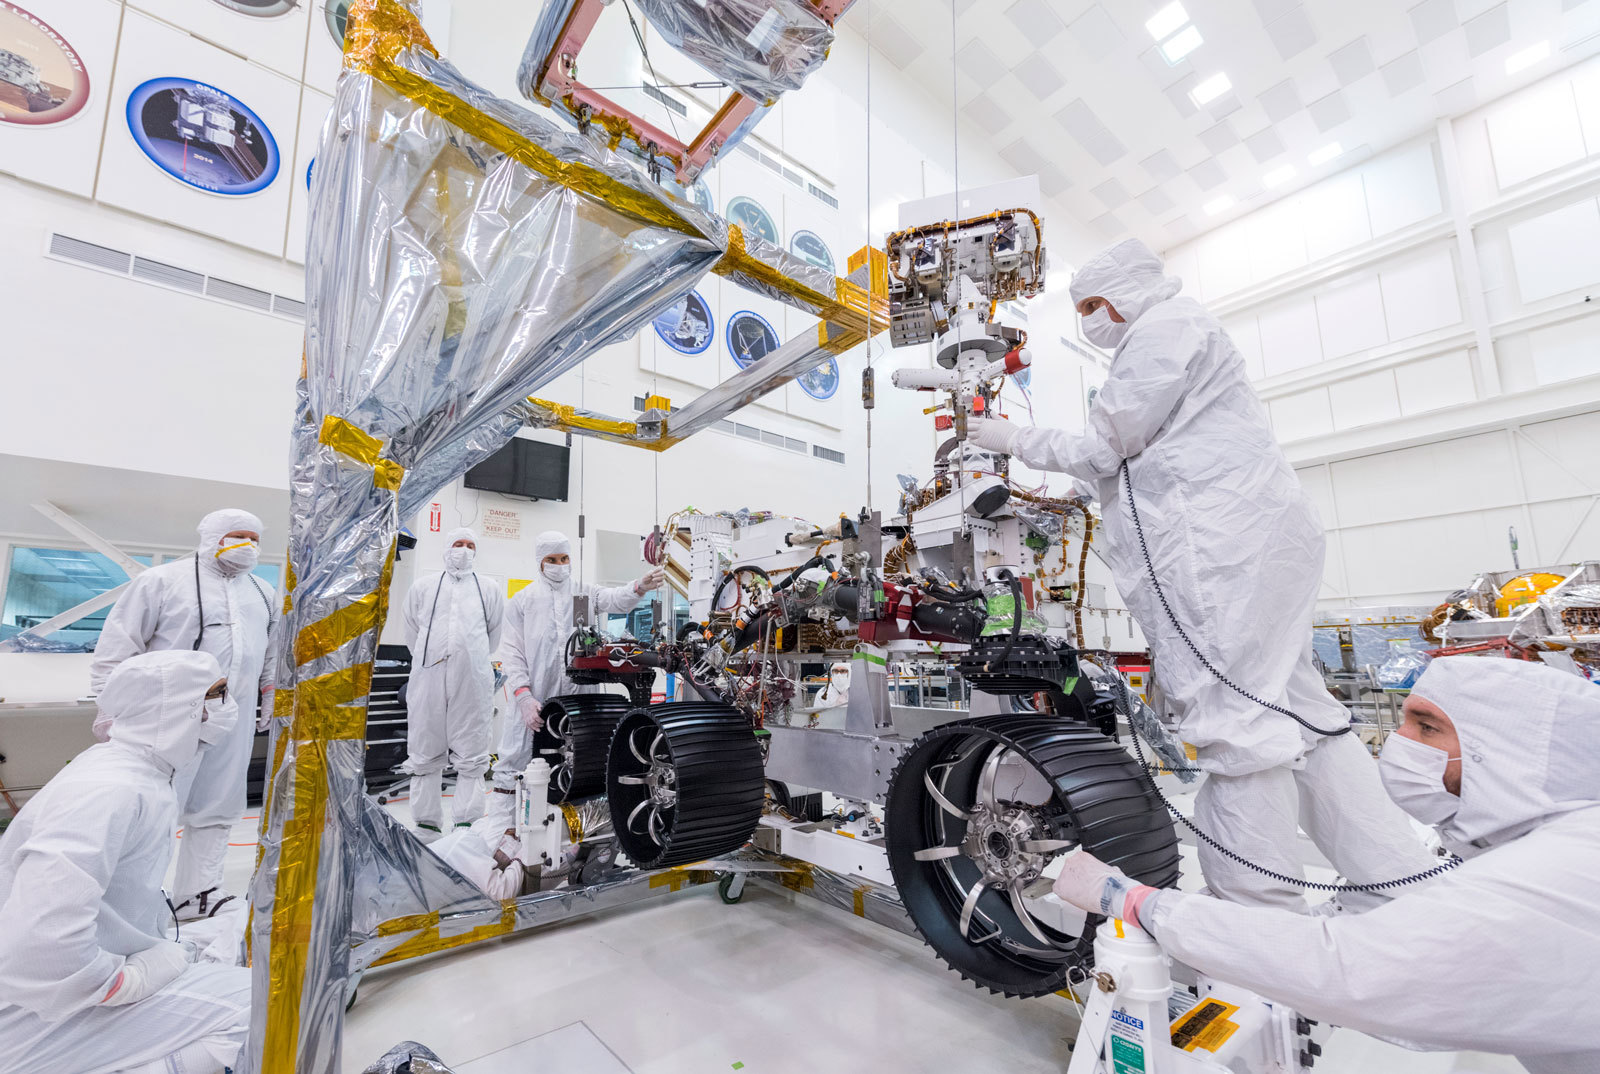 Mars 2020 Gets Its Wheels